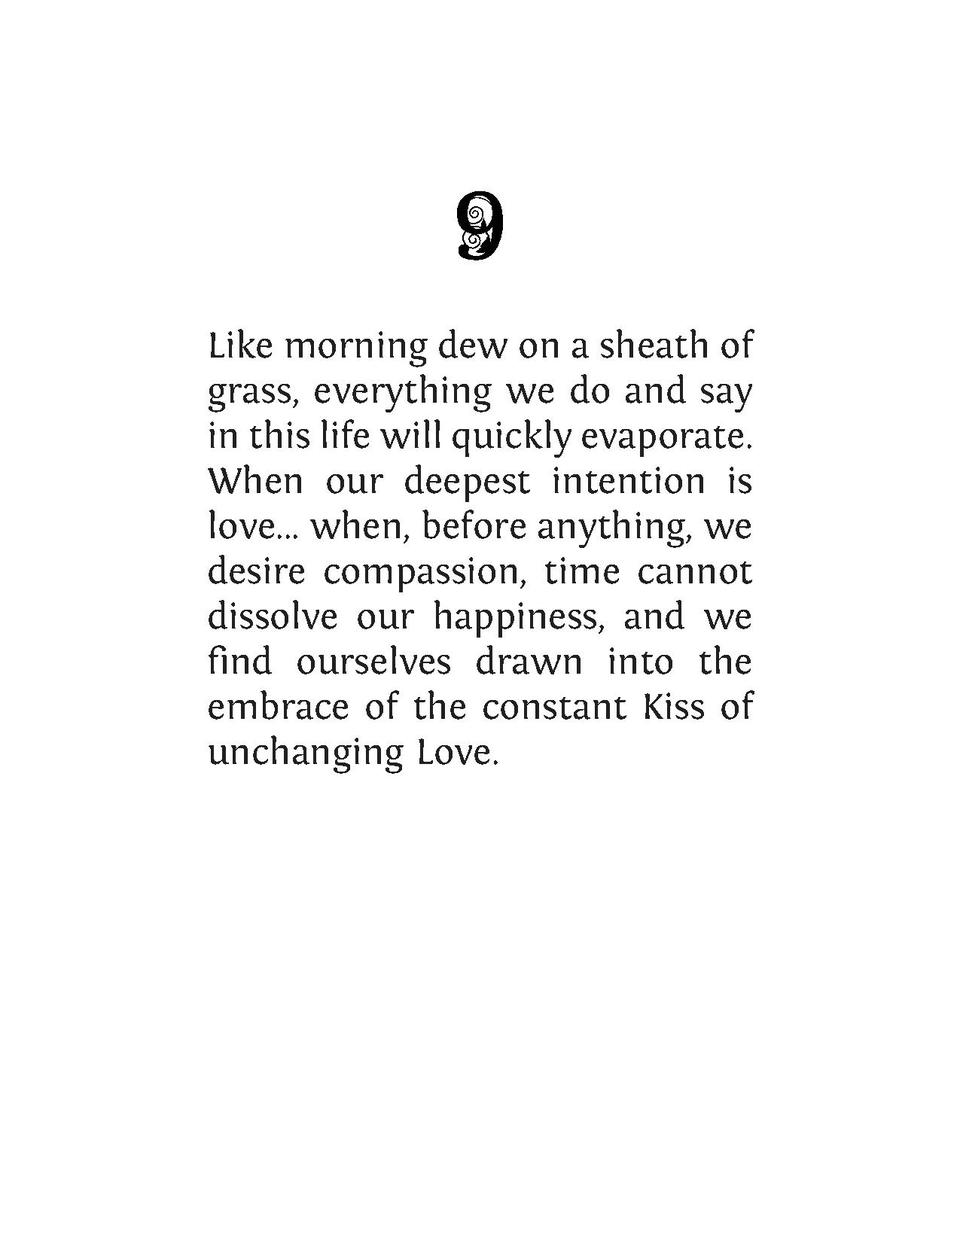 Like morning dew on a sheath of grass, everything we do and say in this life will quickly evaporate. When our deepest inte...